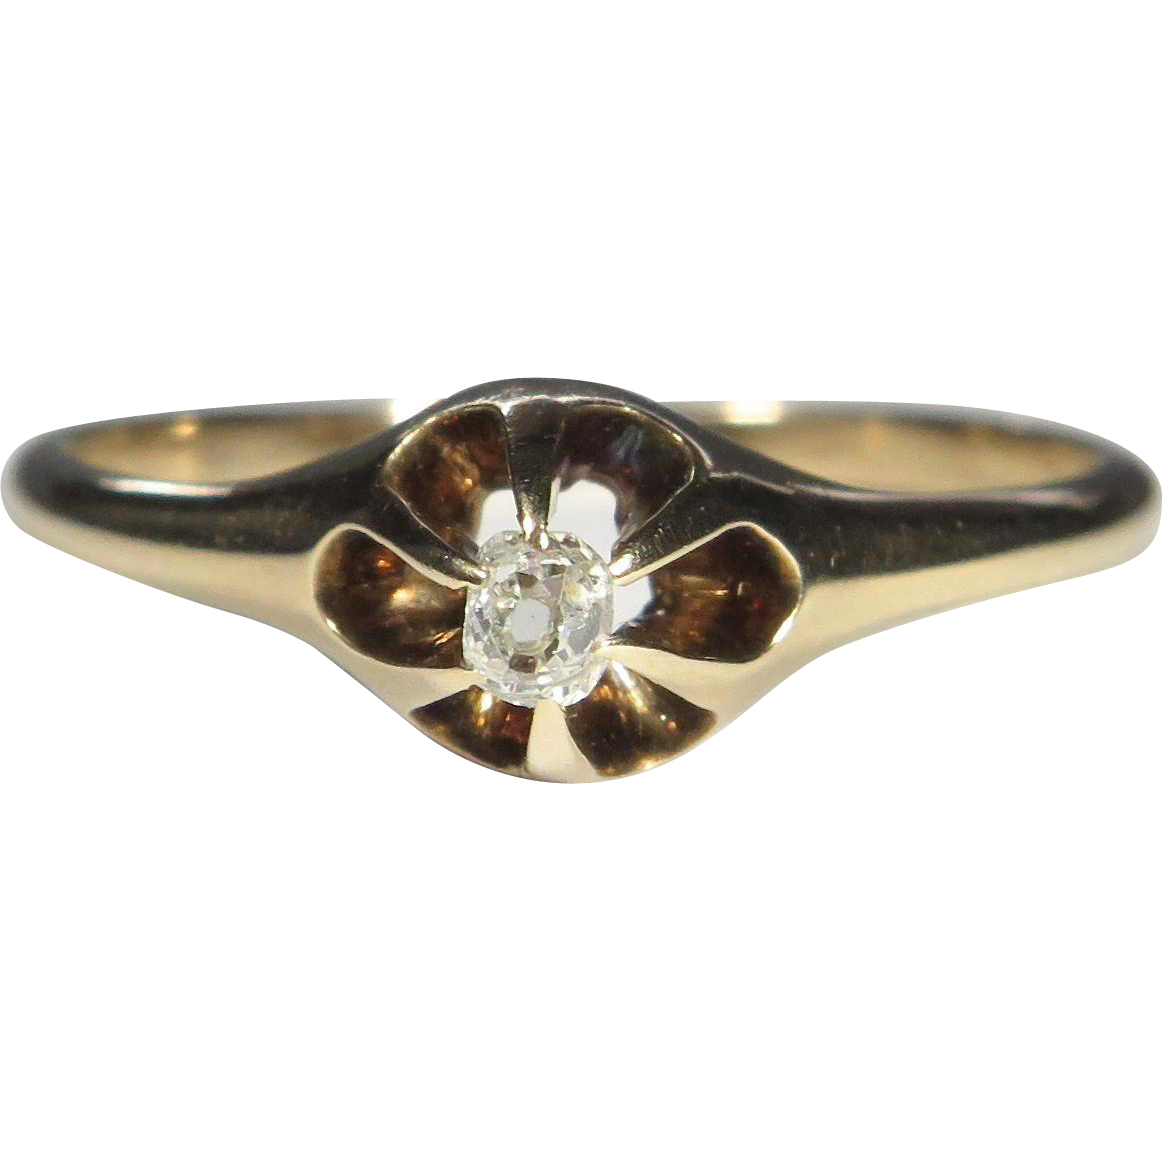 Antique Victorian 10K Gold Mine Cut Diamond Ring